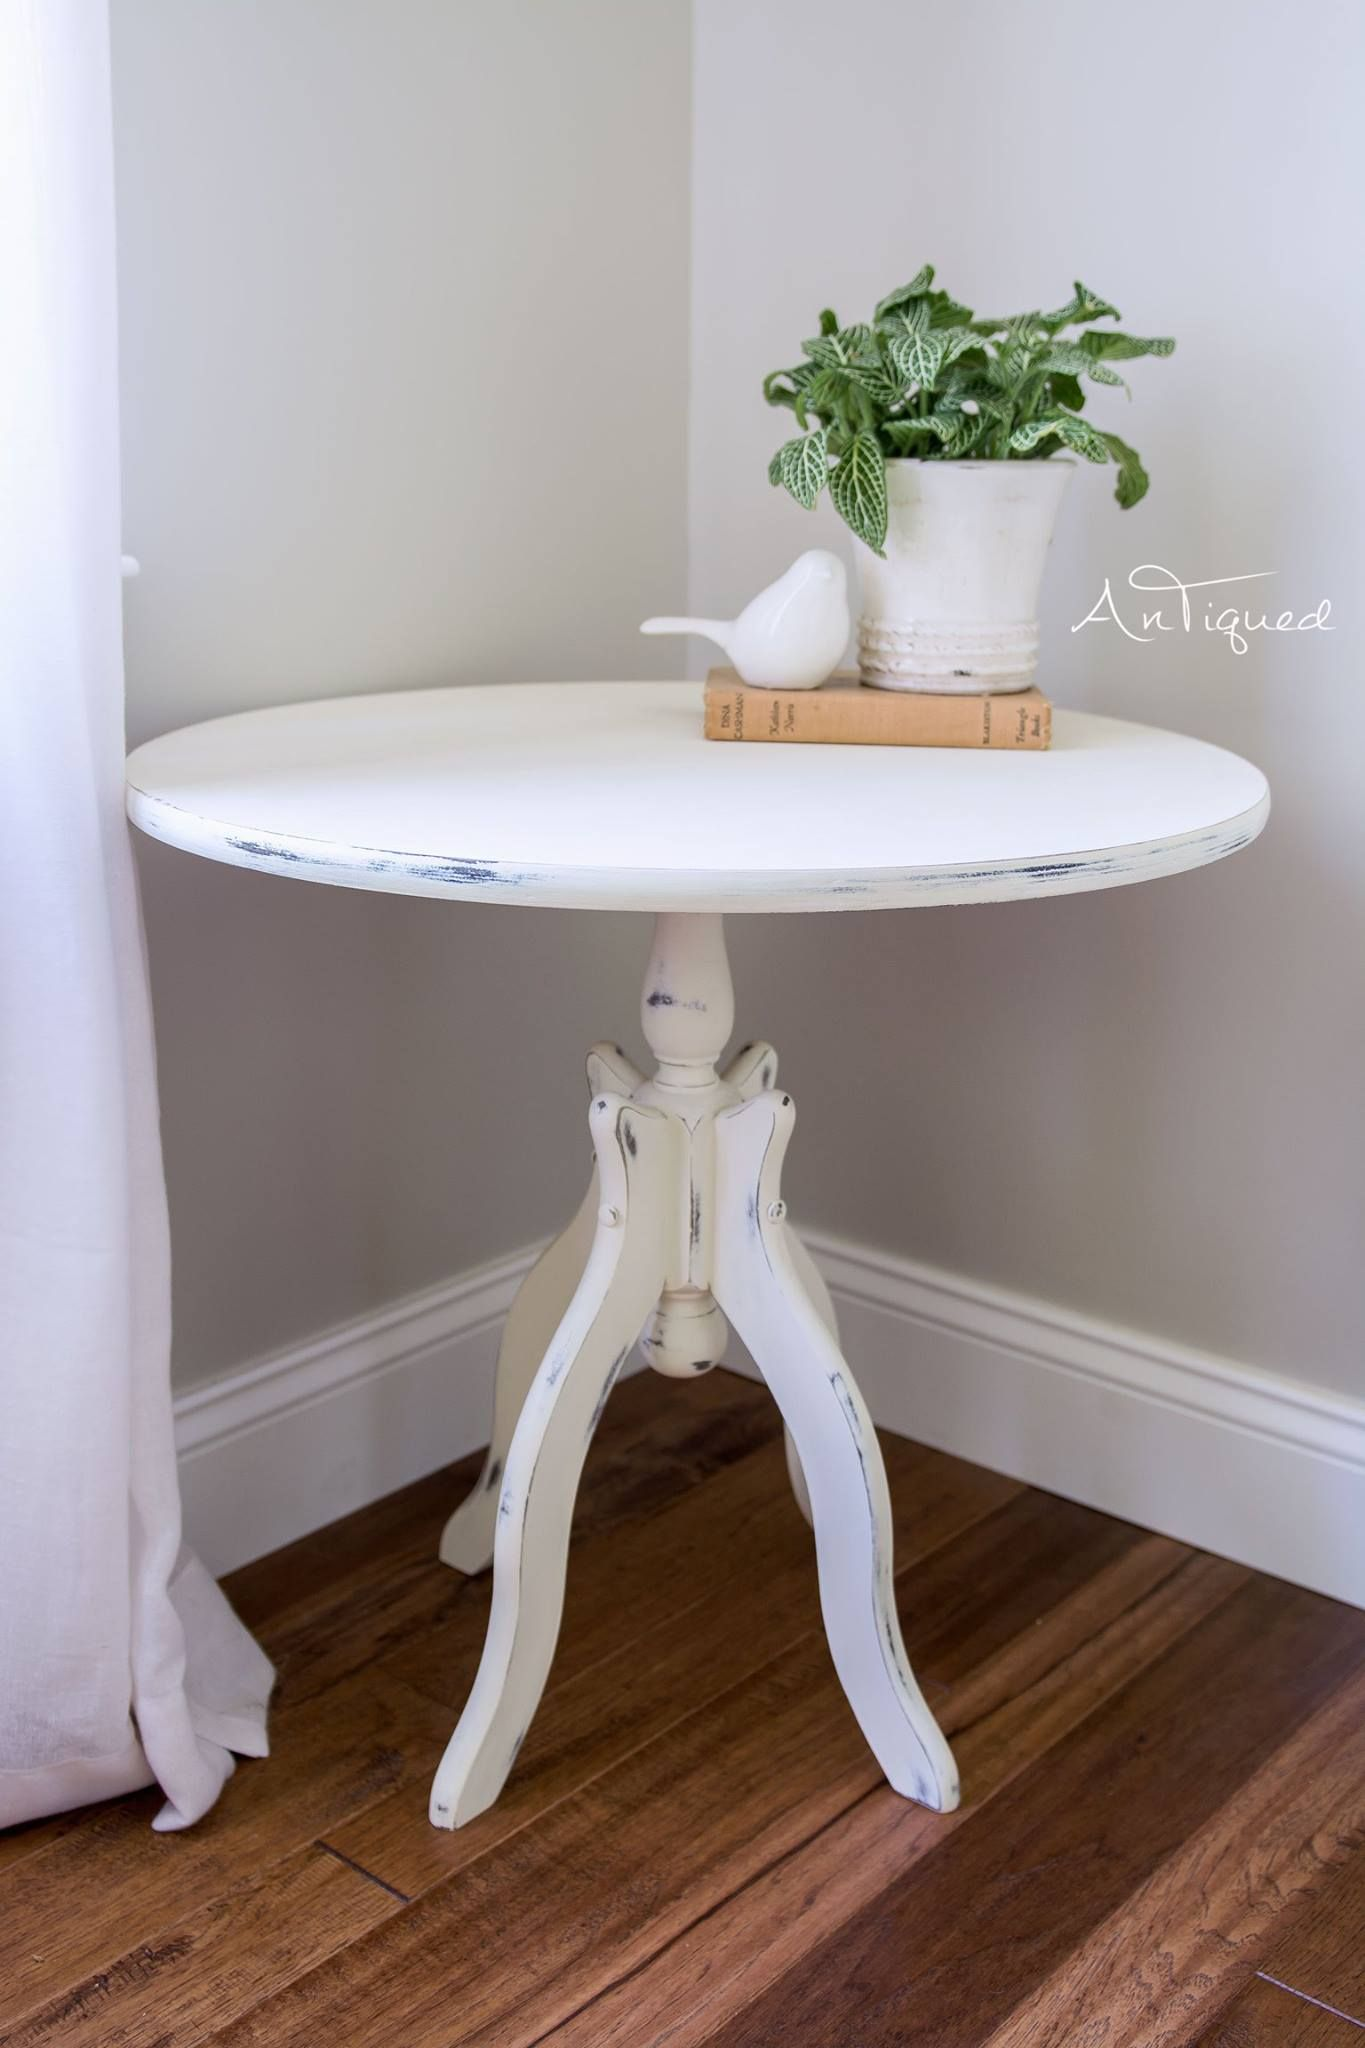 furniture ikea long side table probably perfect real small round antique accent painted annie sloans old white chalk also with alluring farmhouse cherry cool ture whole lighting